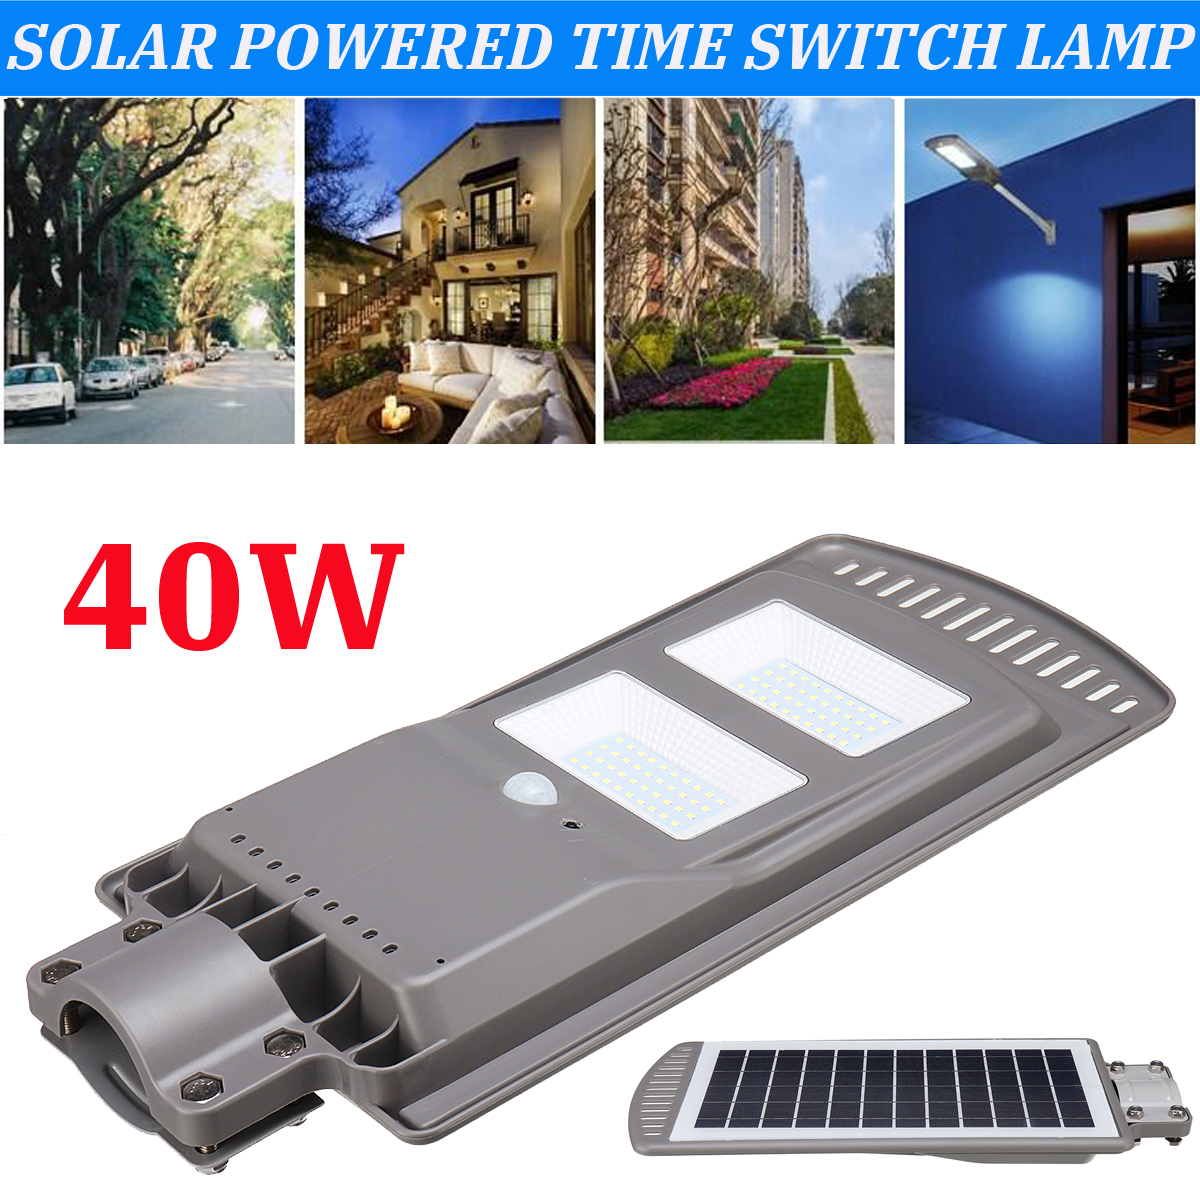 New 40W Solar Powered Panel LED Solar Street Light All-in-1 Time Switch Waterproof IP67 Wall Lighting Lamp for Outdoor Garden high lumen 60w all in one solar street light south africa for commerical lighting residential lighting